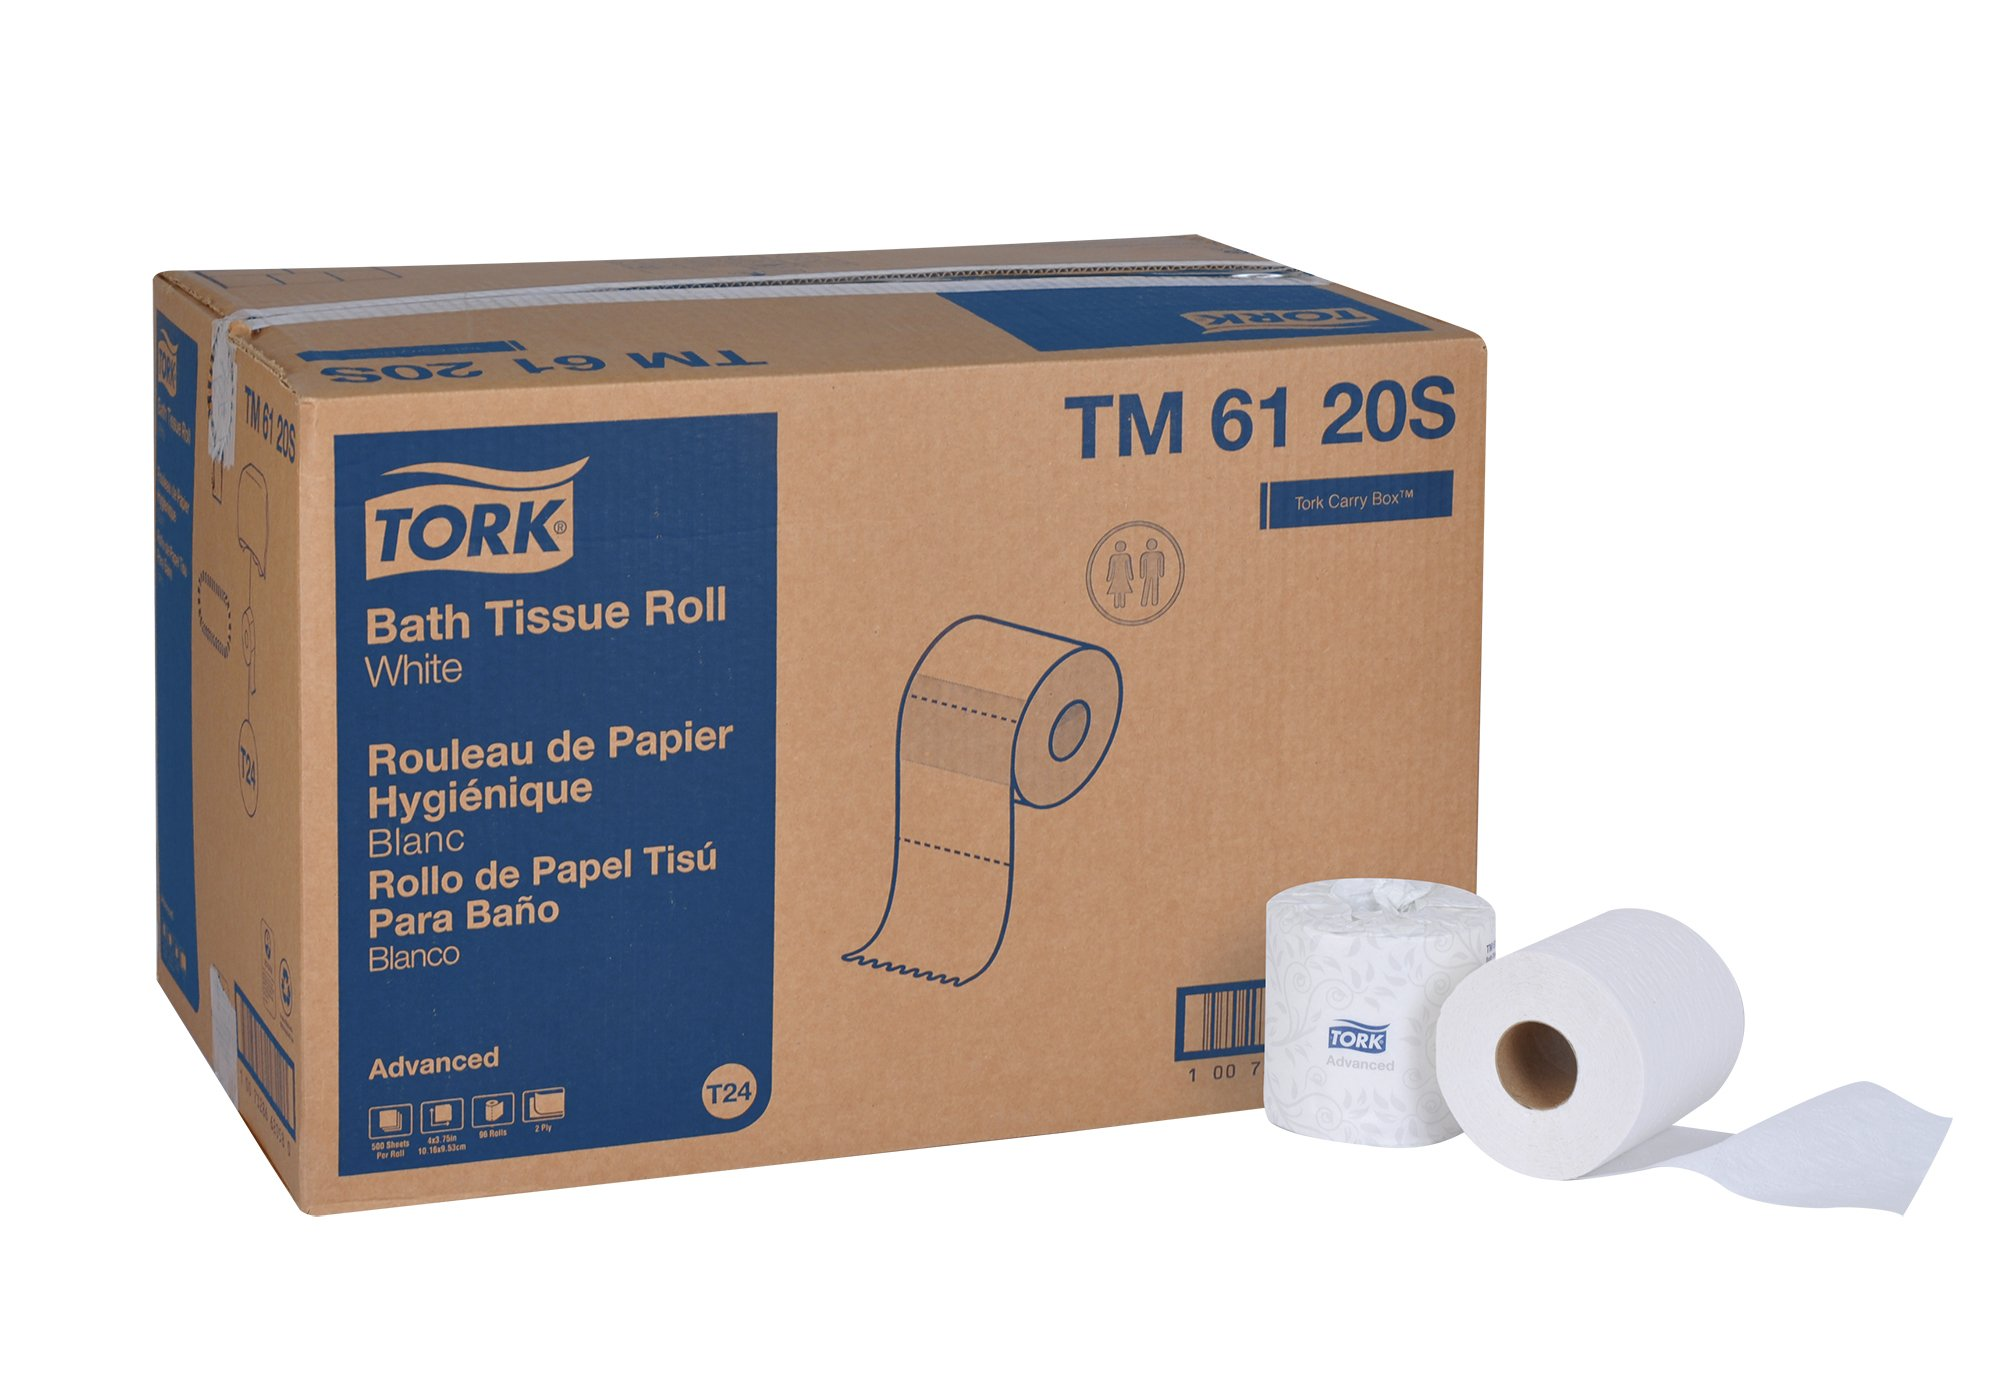 Tork Advanced TM6120S Bath Tissue Roll, 2-Ply,  4'' Width x 3.75'' Length, White (Case of 96 Rolls, 500 per Roll, 48,000 Sheets) by Tork